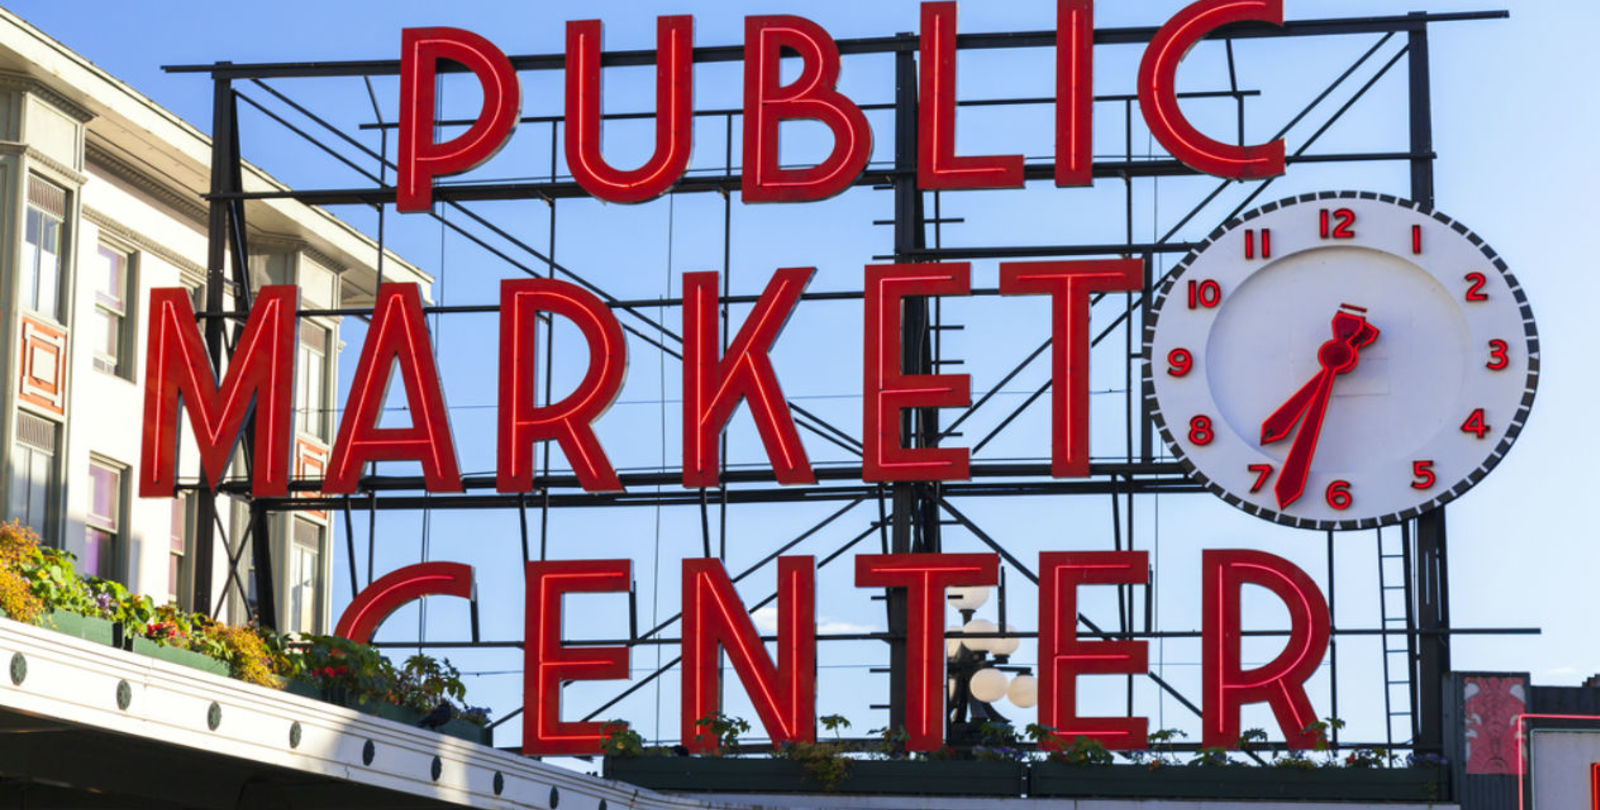 Pike's Market Place - Downtown Seattle